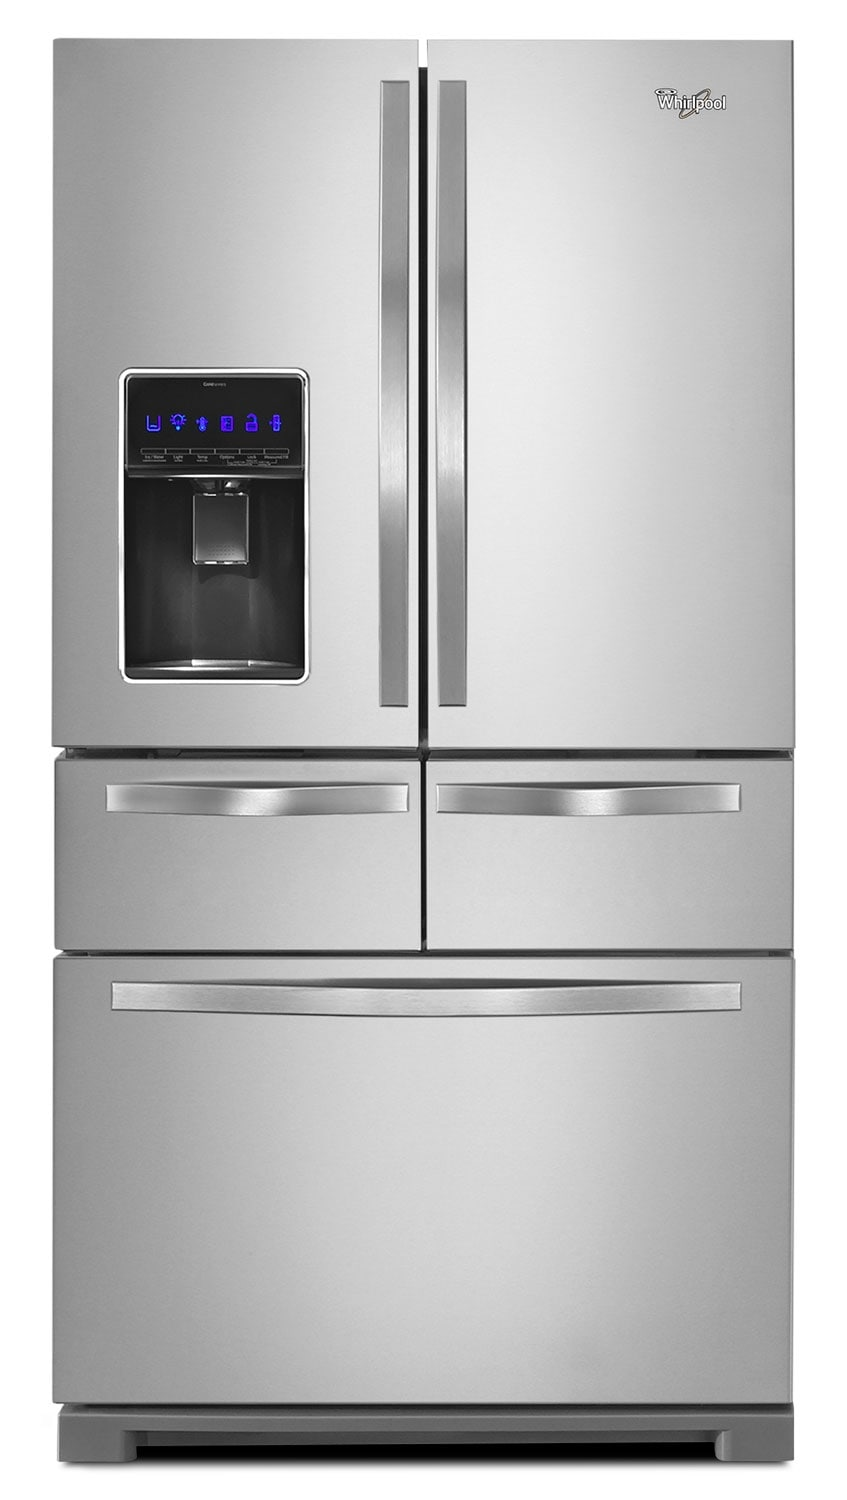 Whirlpool Stainless Steel French Door Refrigerator (25.8 Cu. Ft.) - WRV986FDEM